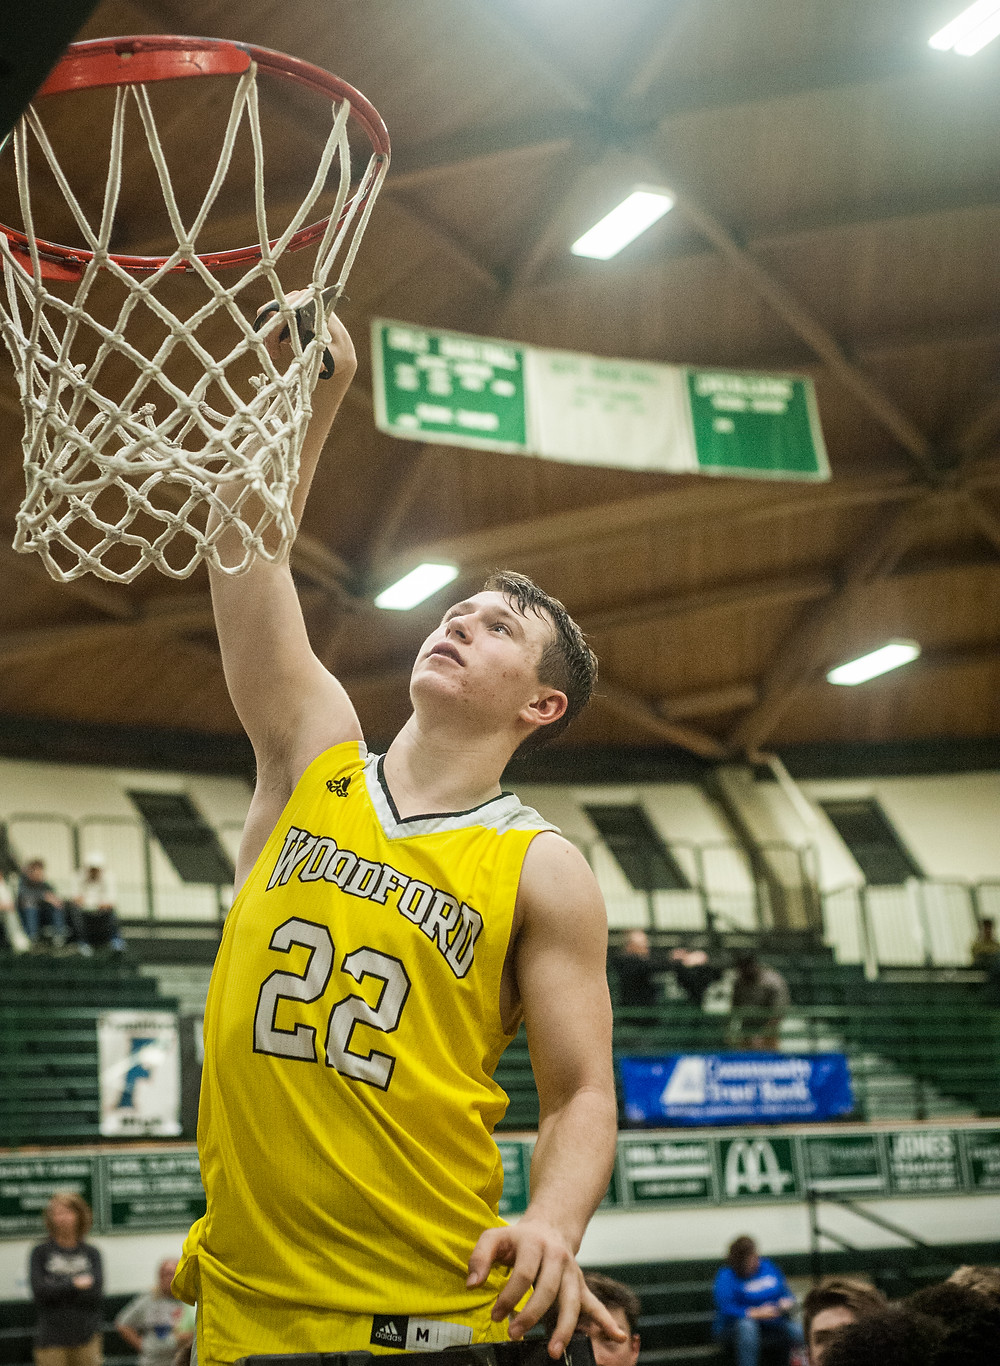 WCHS JUNIOR BEN NASH helps cut down the net after the Jackets' District championship win on Friday, Feb. 23 at Western Hills High School.  (Photo by Bill Caine)